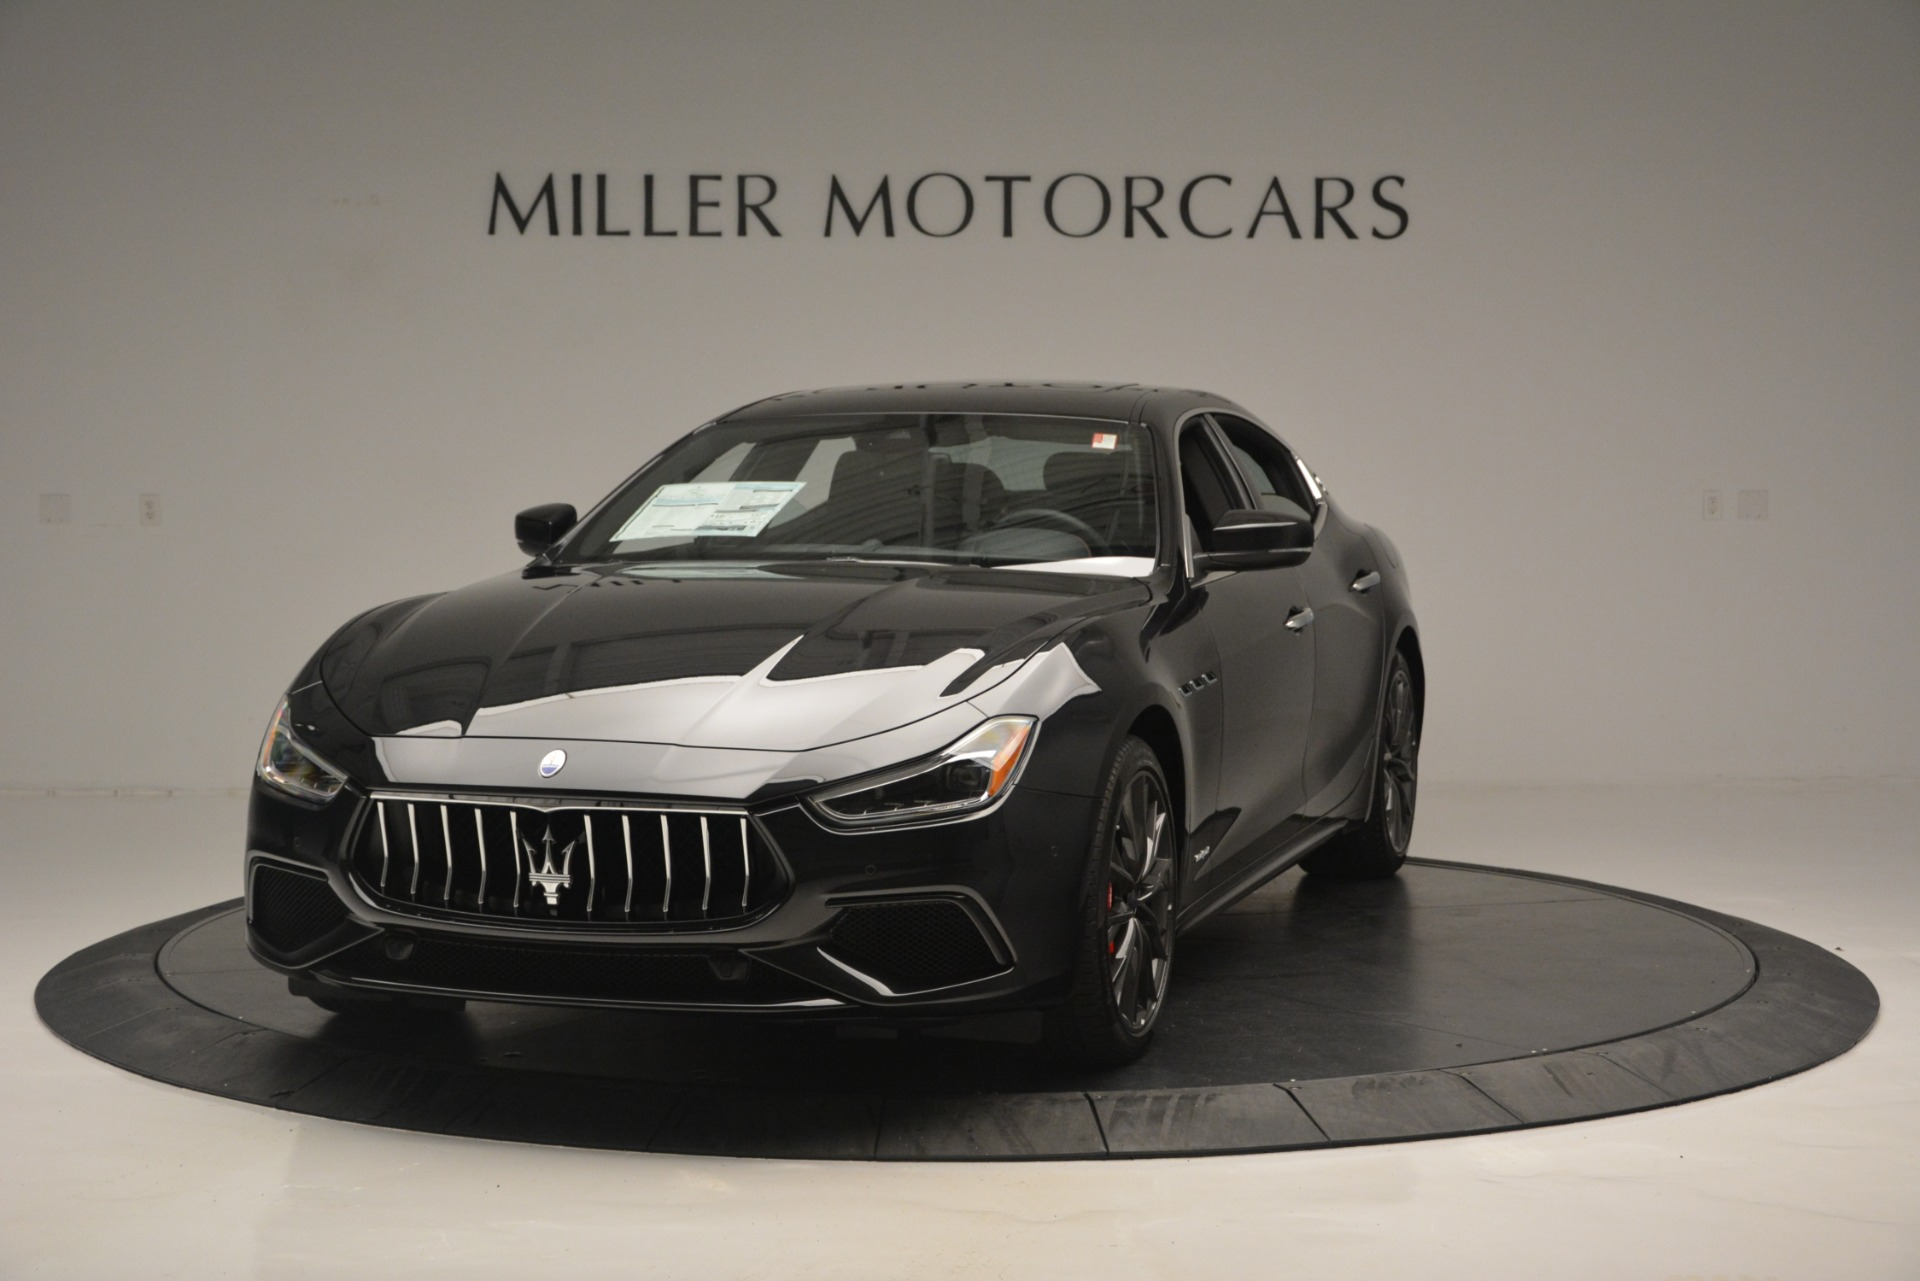 New 2019 Maserati Ghibli S Q4 GranSport For Sale In Greenwich, CT 2635_main